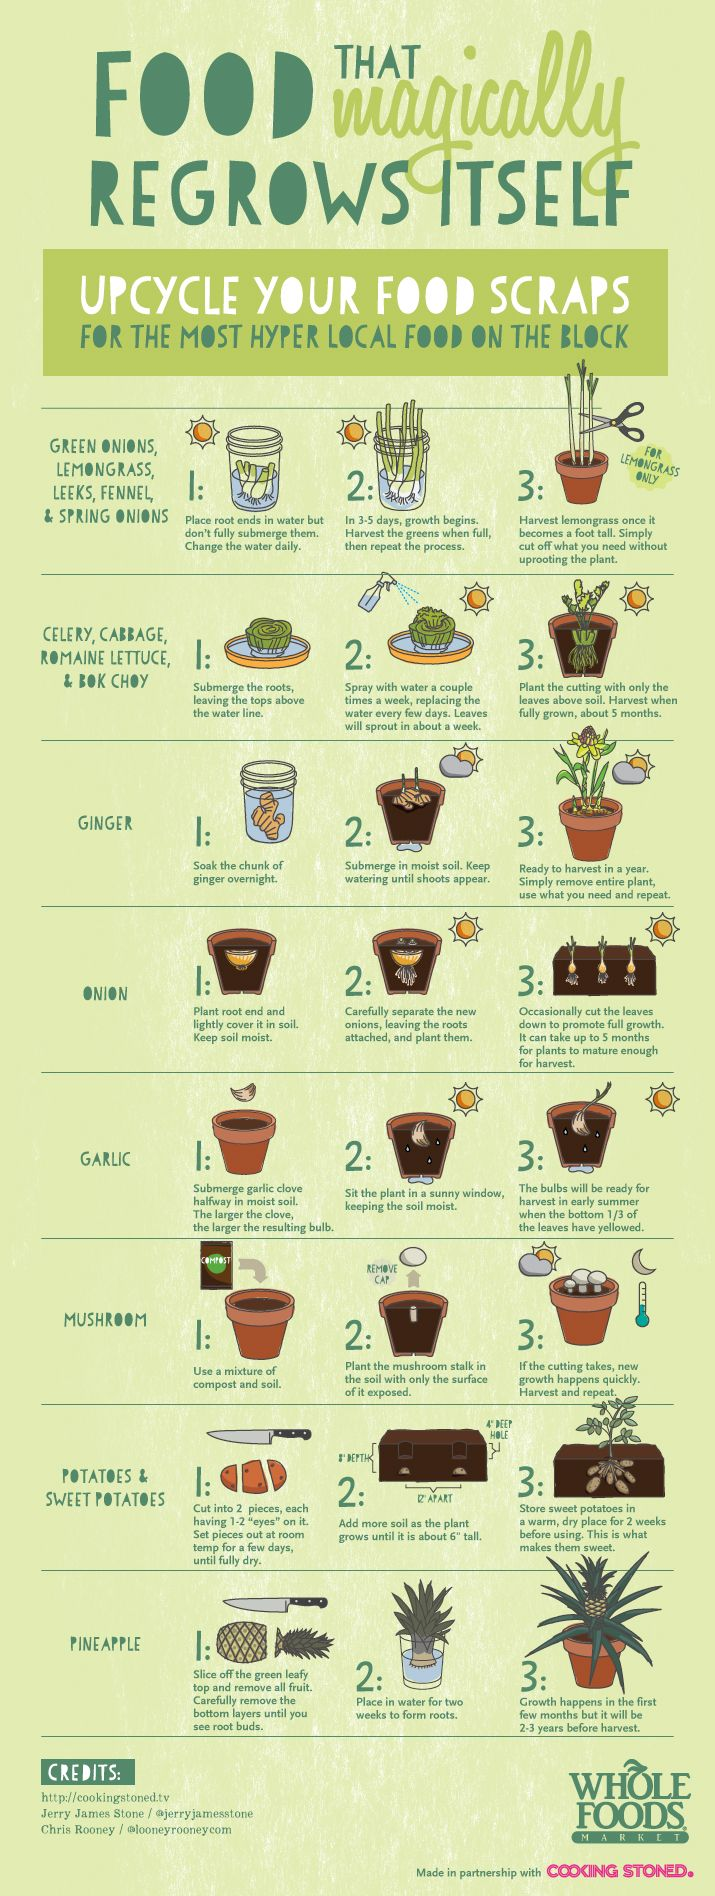 We're doing this with lettuce right now!  Be sure to upcycle your food scraps... All of this food will magically regrow itself!